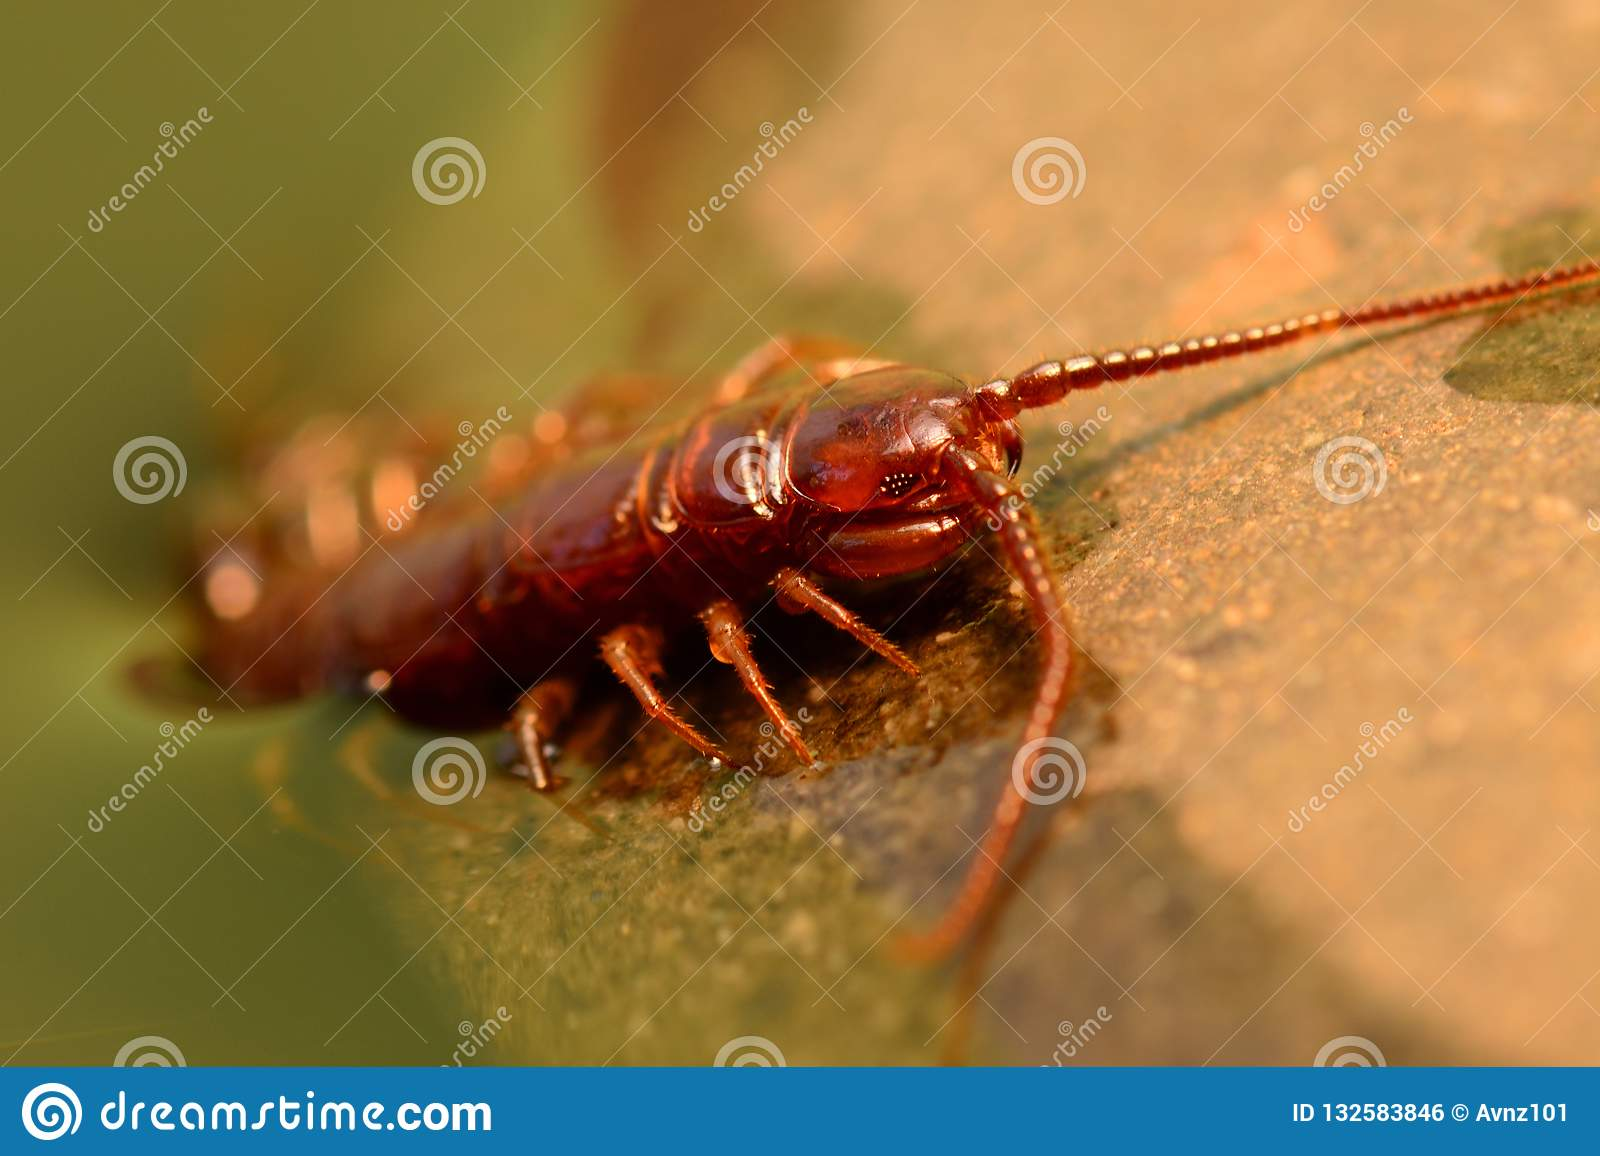 Macro of a brown scolopendra or stone centipede Lithobius forficatus crawling out of water; fine details of the head